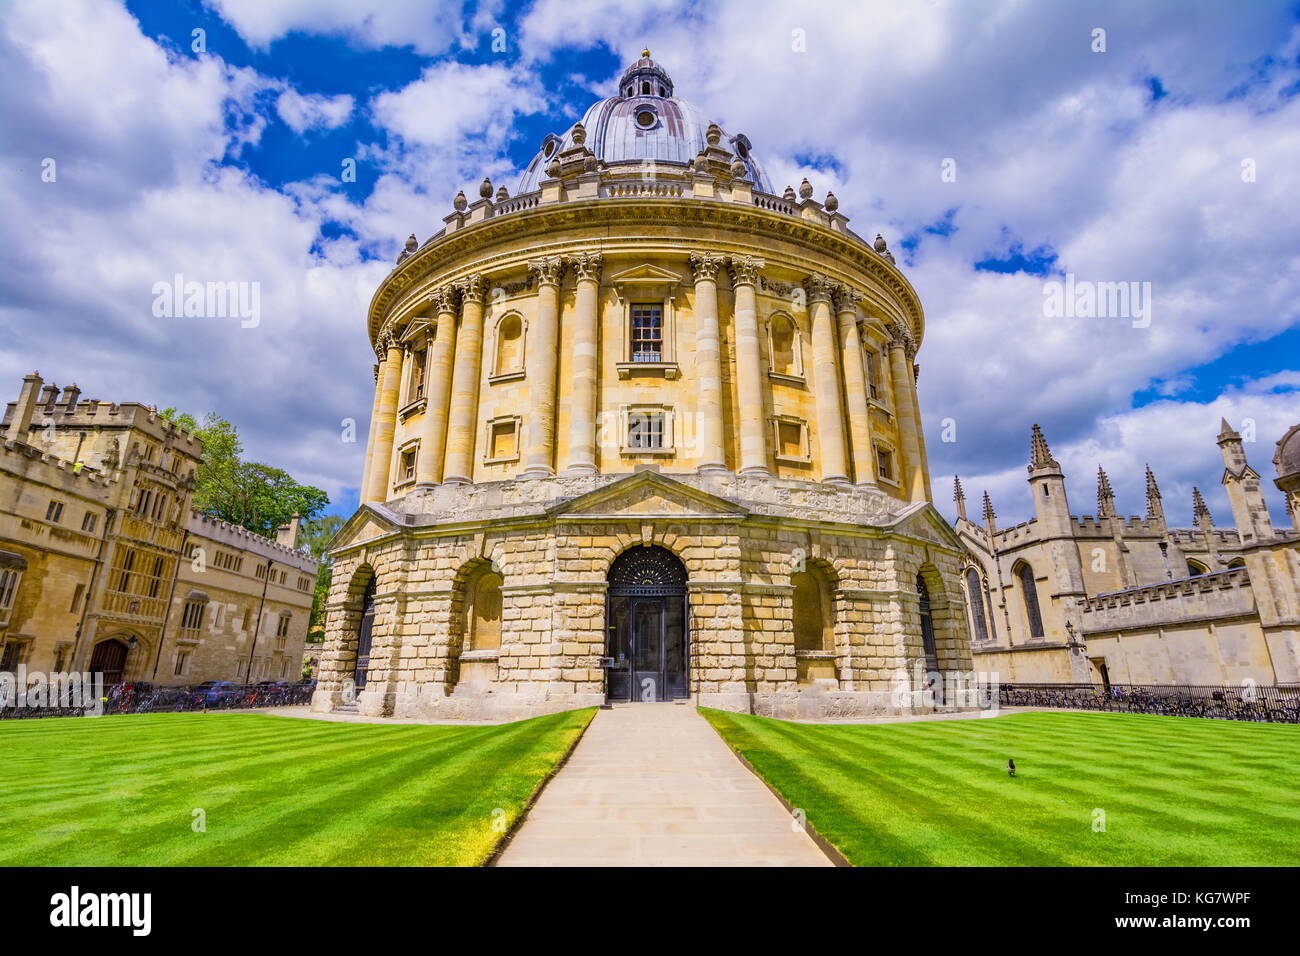 Radcliffe Camera, room addition to the Bodleian Library in Oxfor - Stock Image